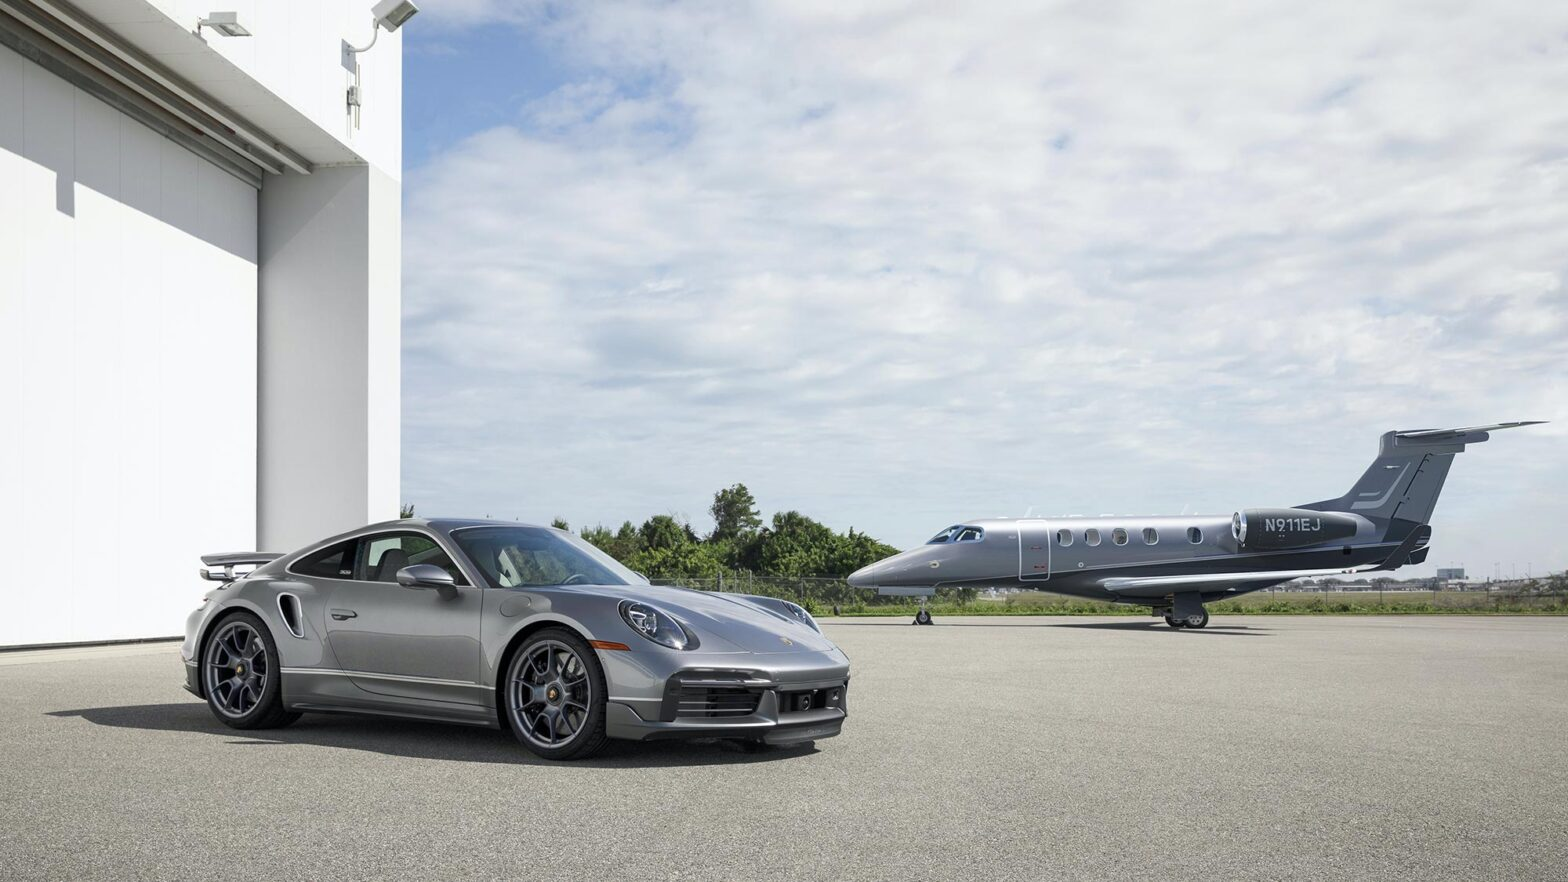 Embraer Phenom 300E + Porsche 911 Turbo S